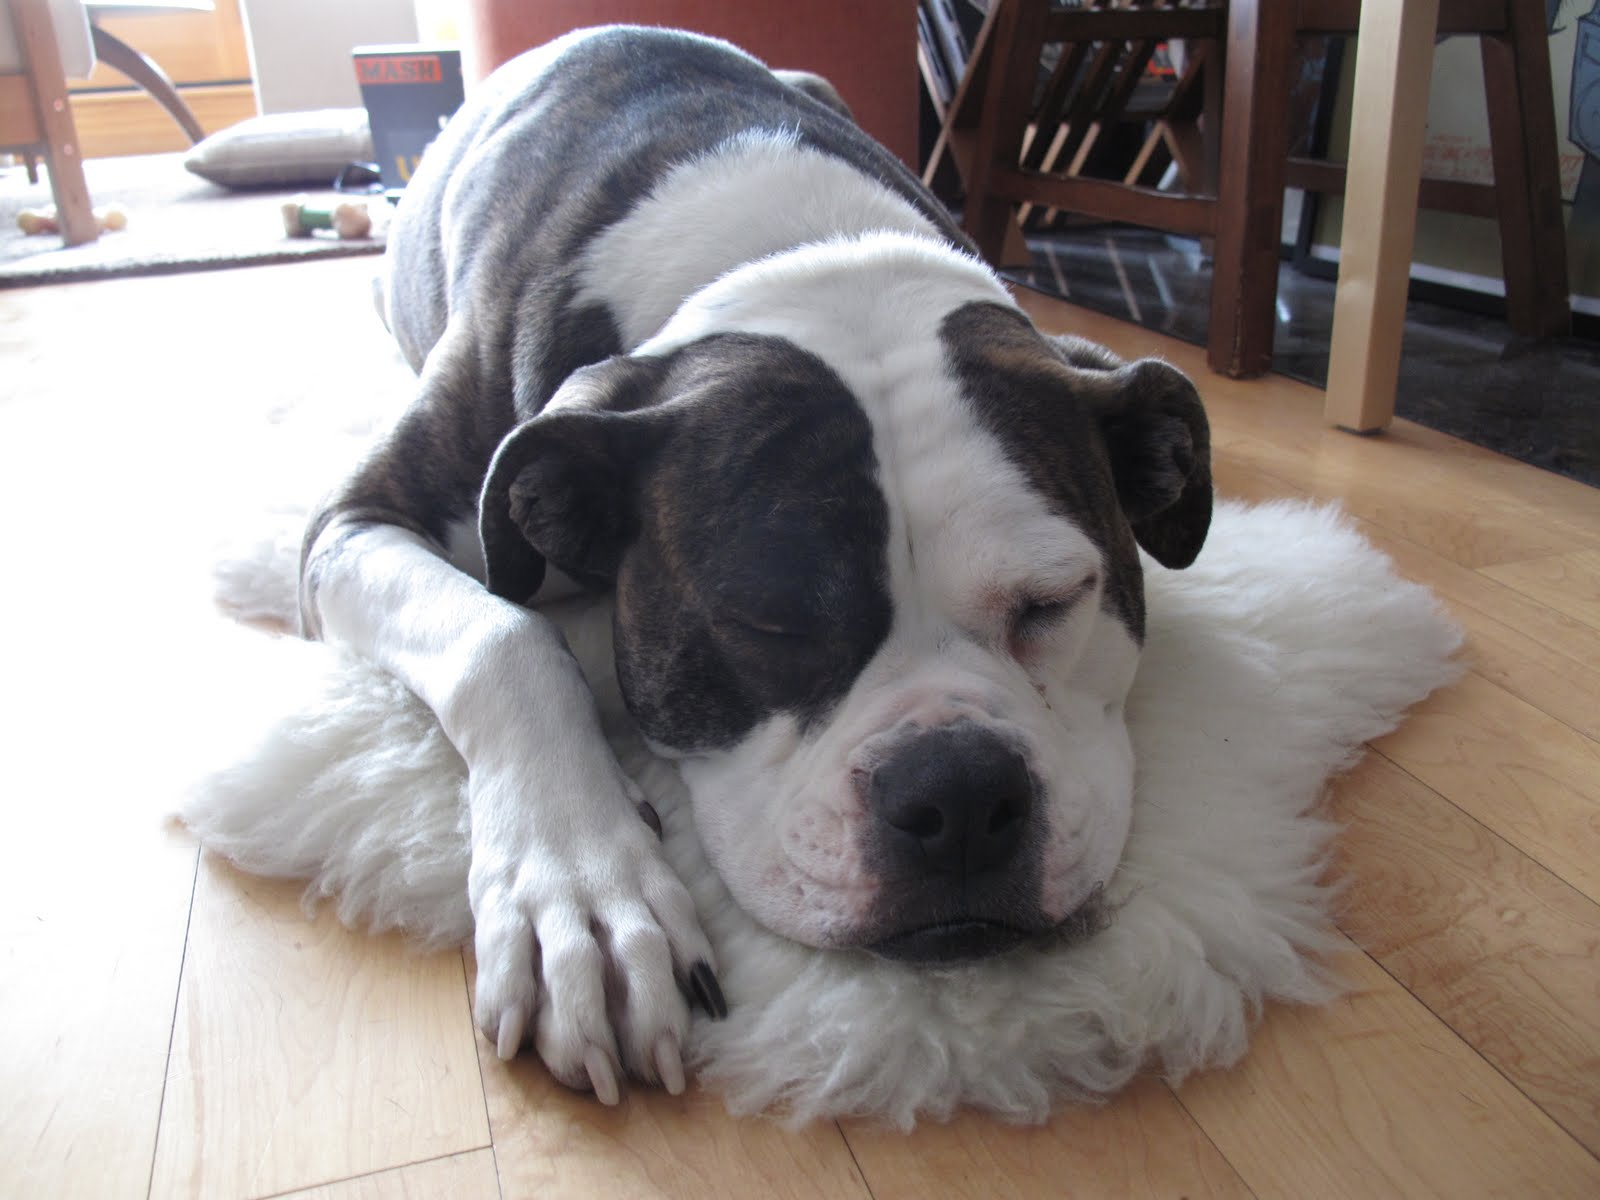 Dogs That Use Their Paws Like Hands